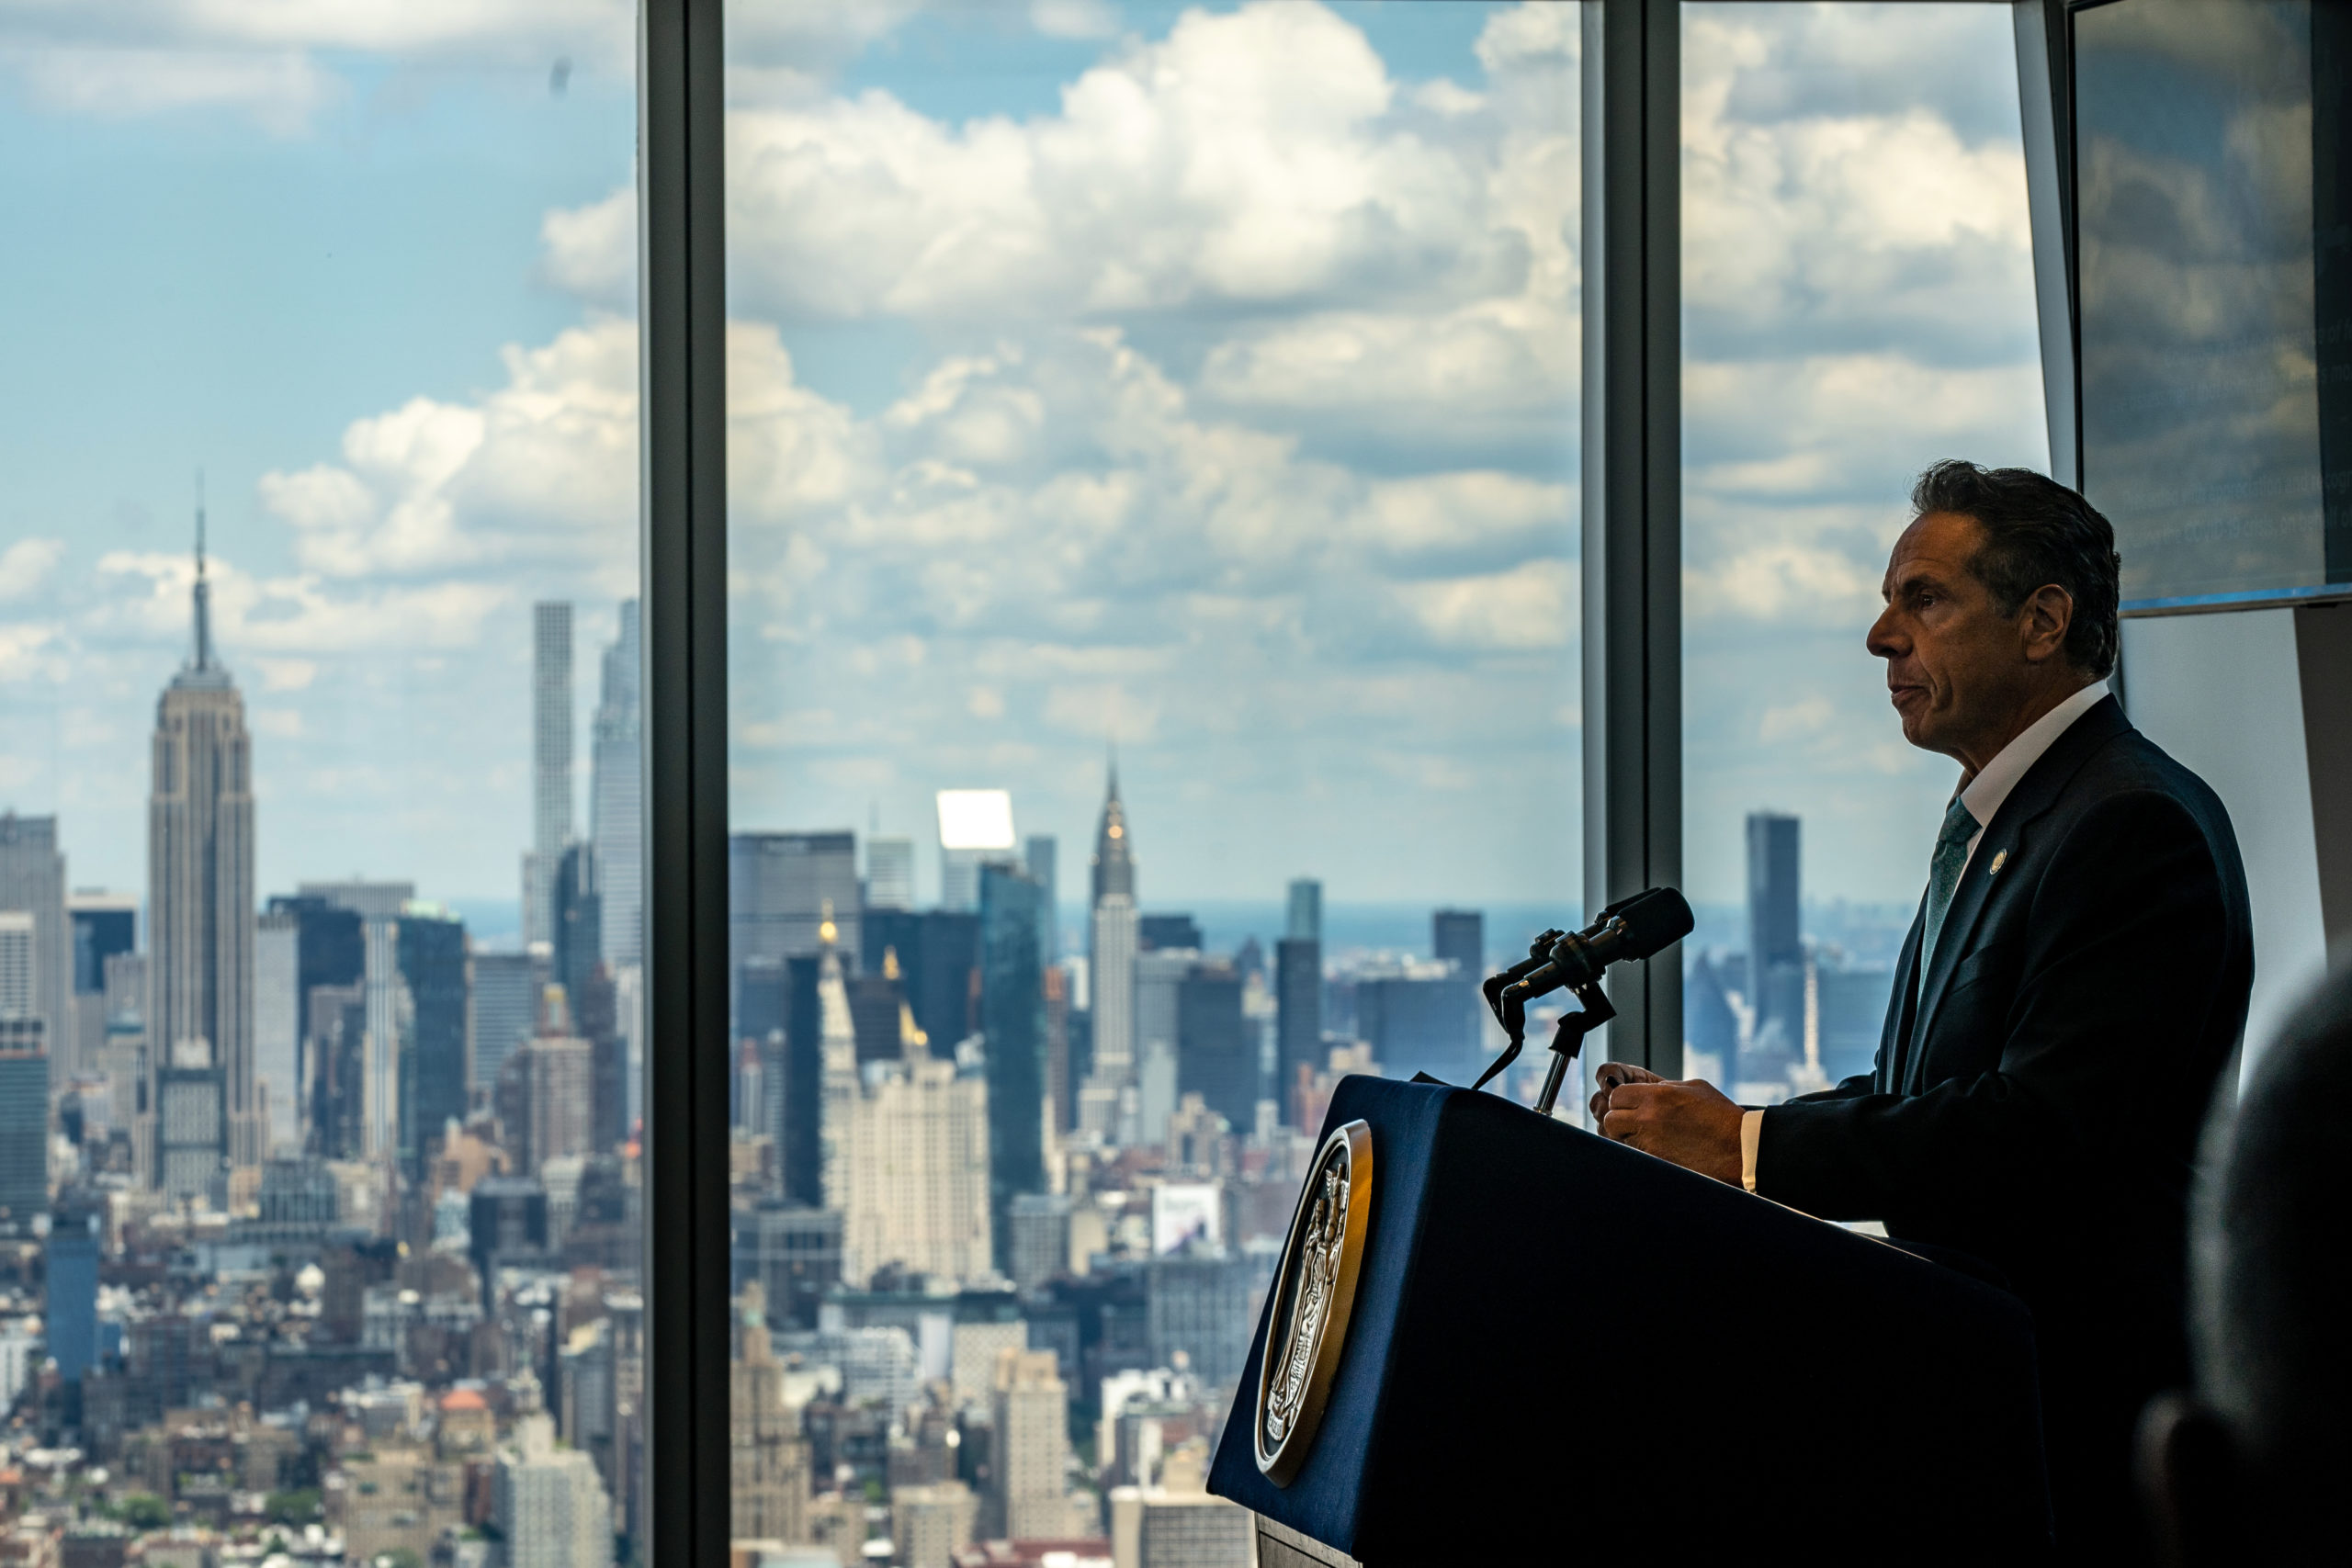 New York Gov. Andrew Cuomo speaks during a press conference at One World Trade Center on June 15, 2021 in New York City. (Photo by David Dee Delgado/Getty Images)